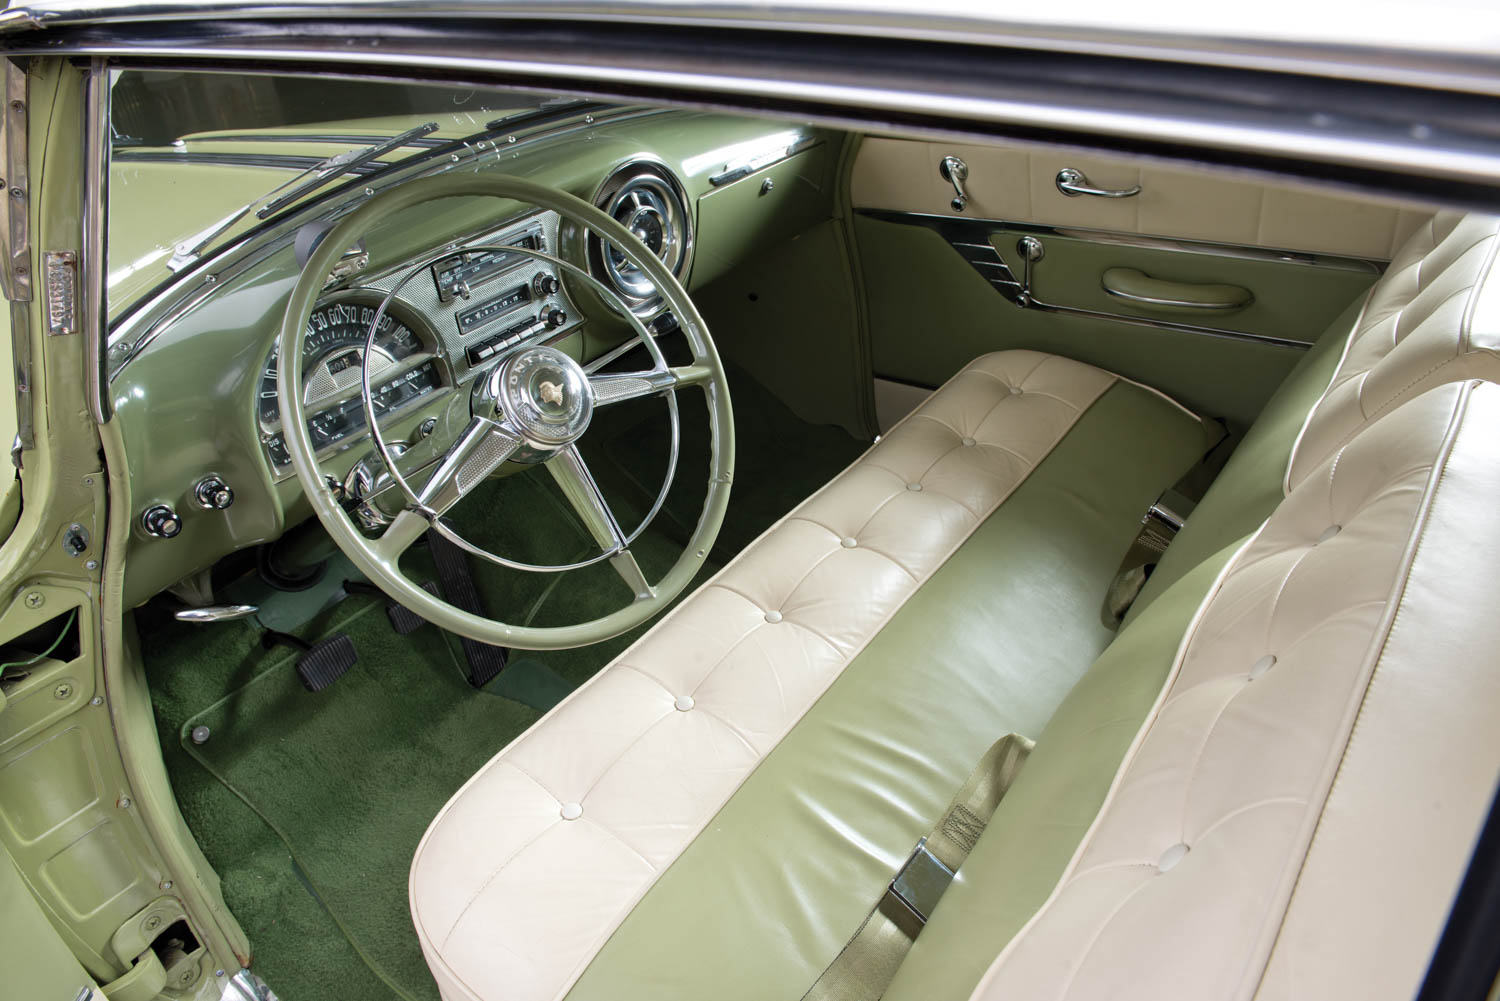 1953 Pontiac Chieftain Deluxe Eight Custom Catalina interior